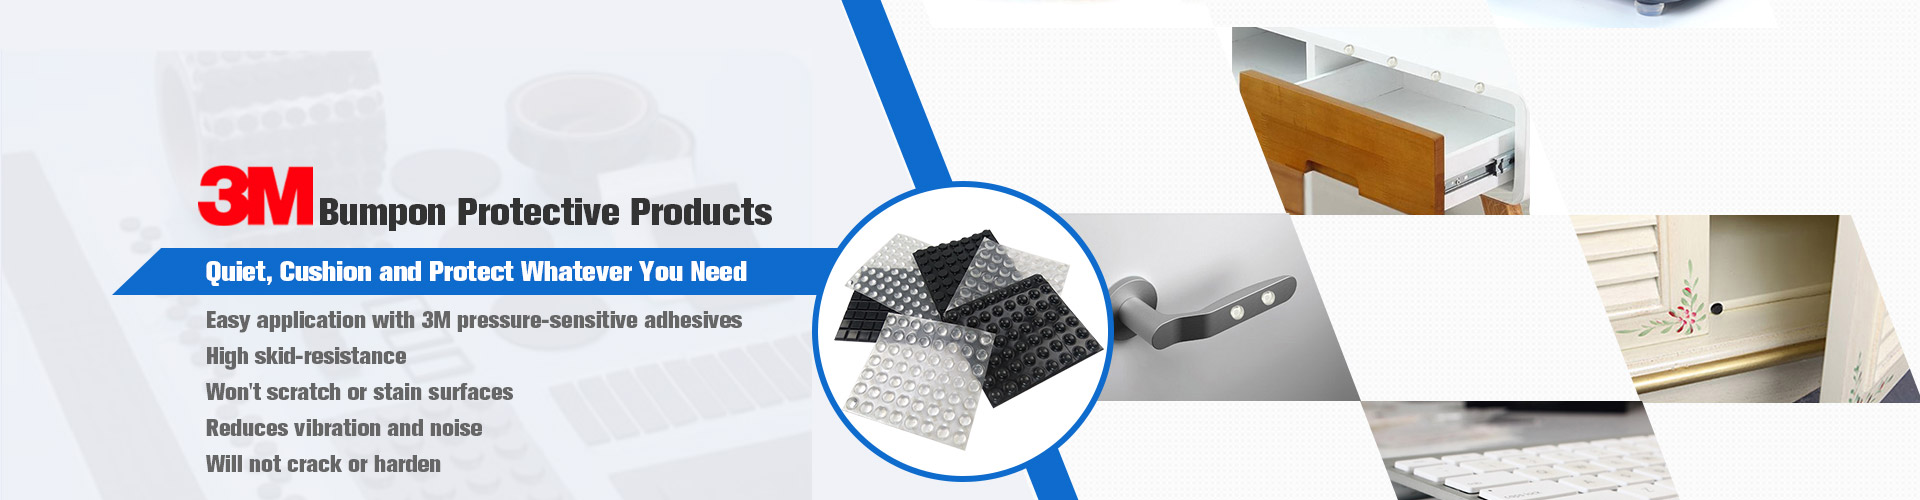 Shenzhen Richeng Electronic Material Co., Ltd.